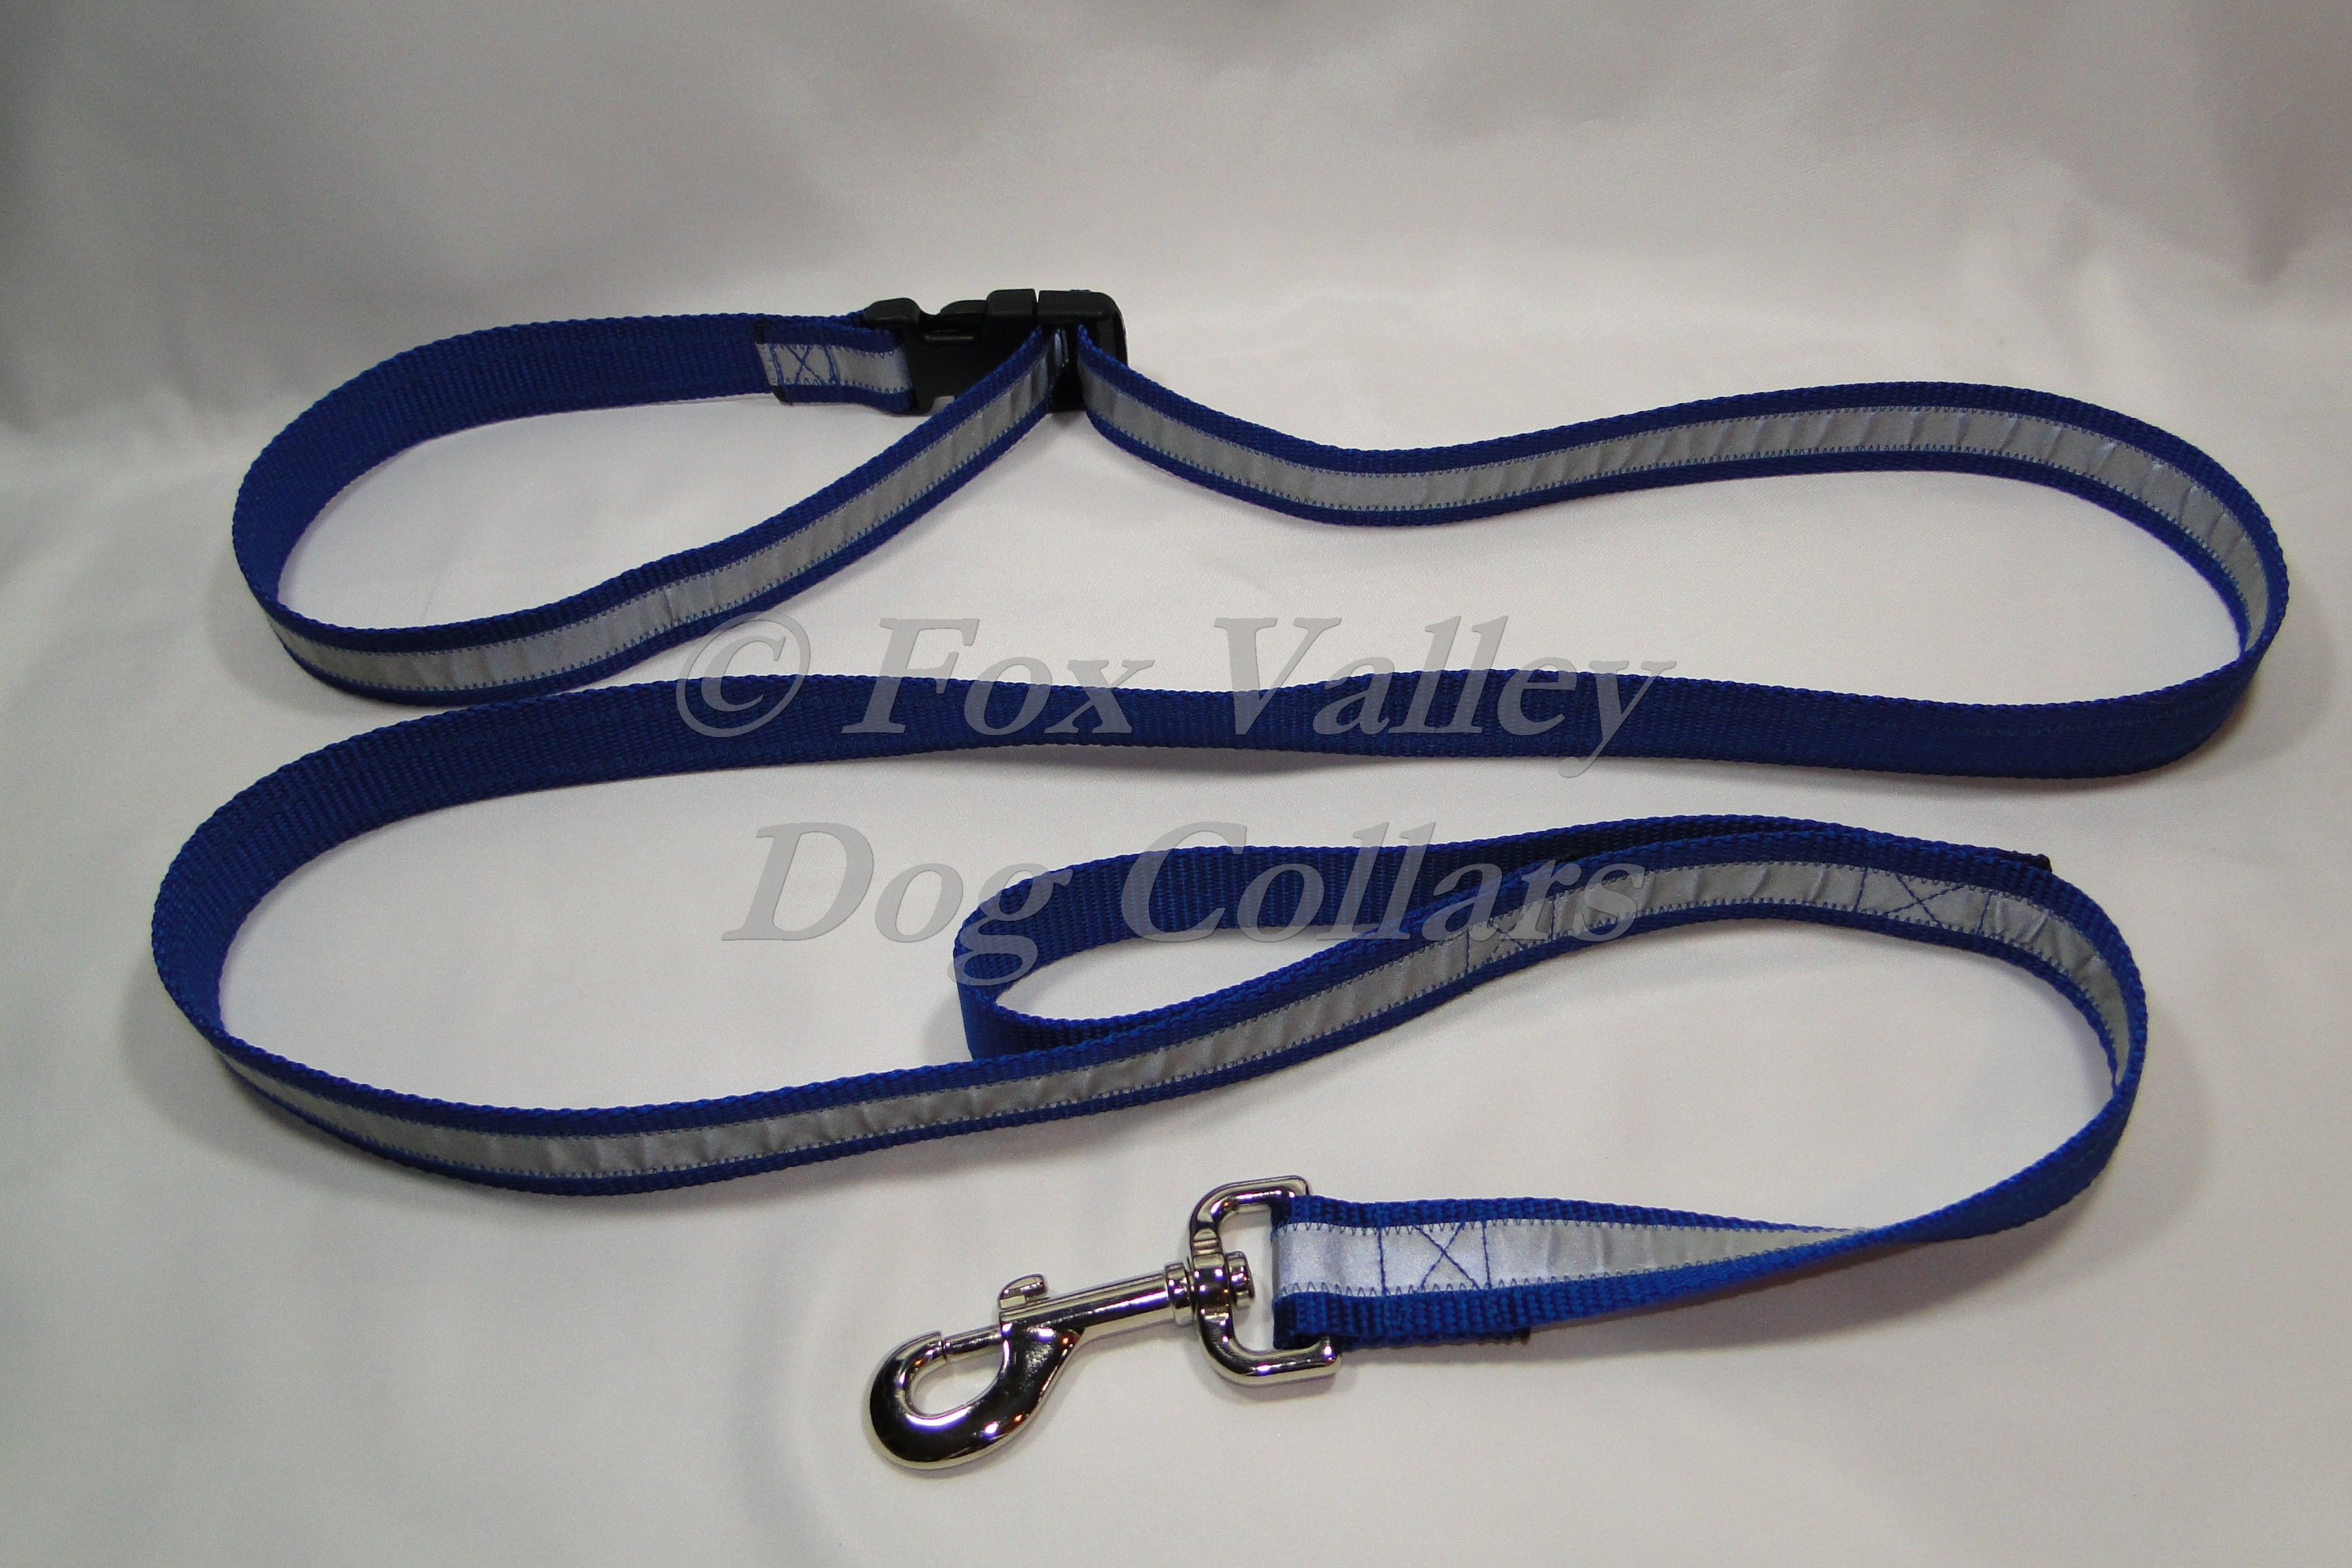 """1"""" X 6' nylon custom adjustable reflective leash includes a traffic handle for more control in crowded places! Made with authentic Scotchlite 3M reflective material and right here in the USA!  Available in seven colors!  $32.00"""